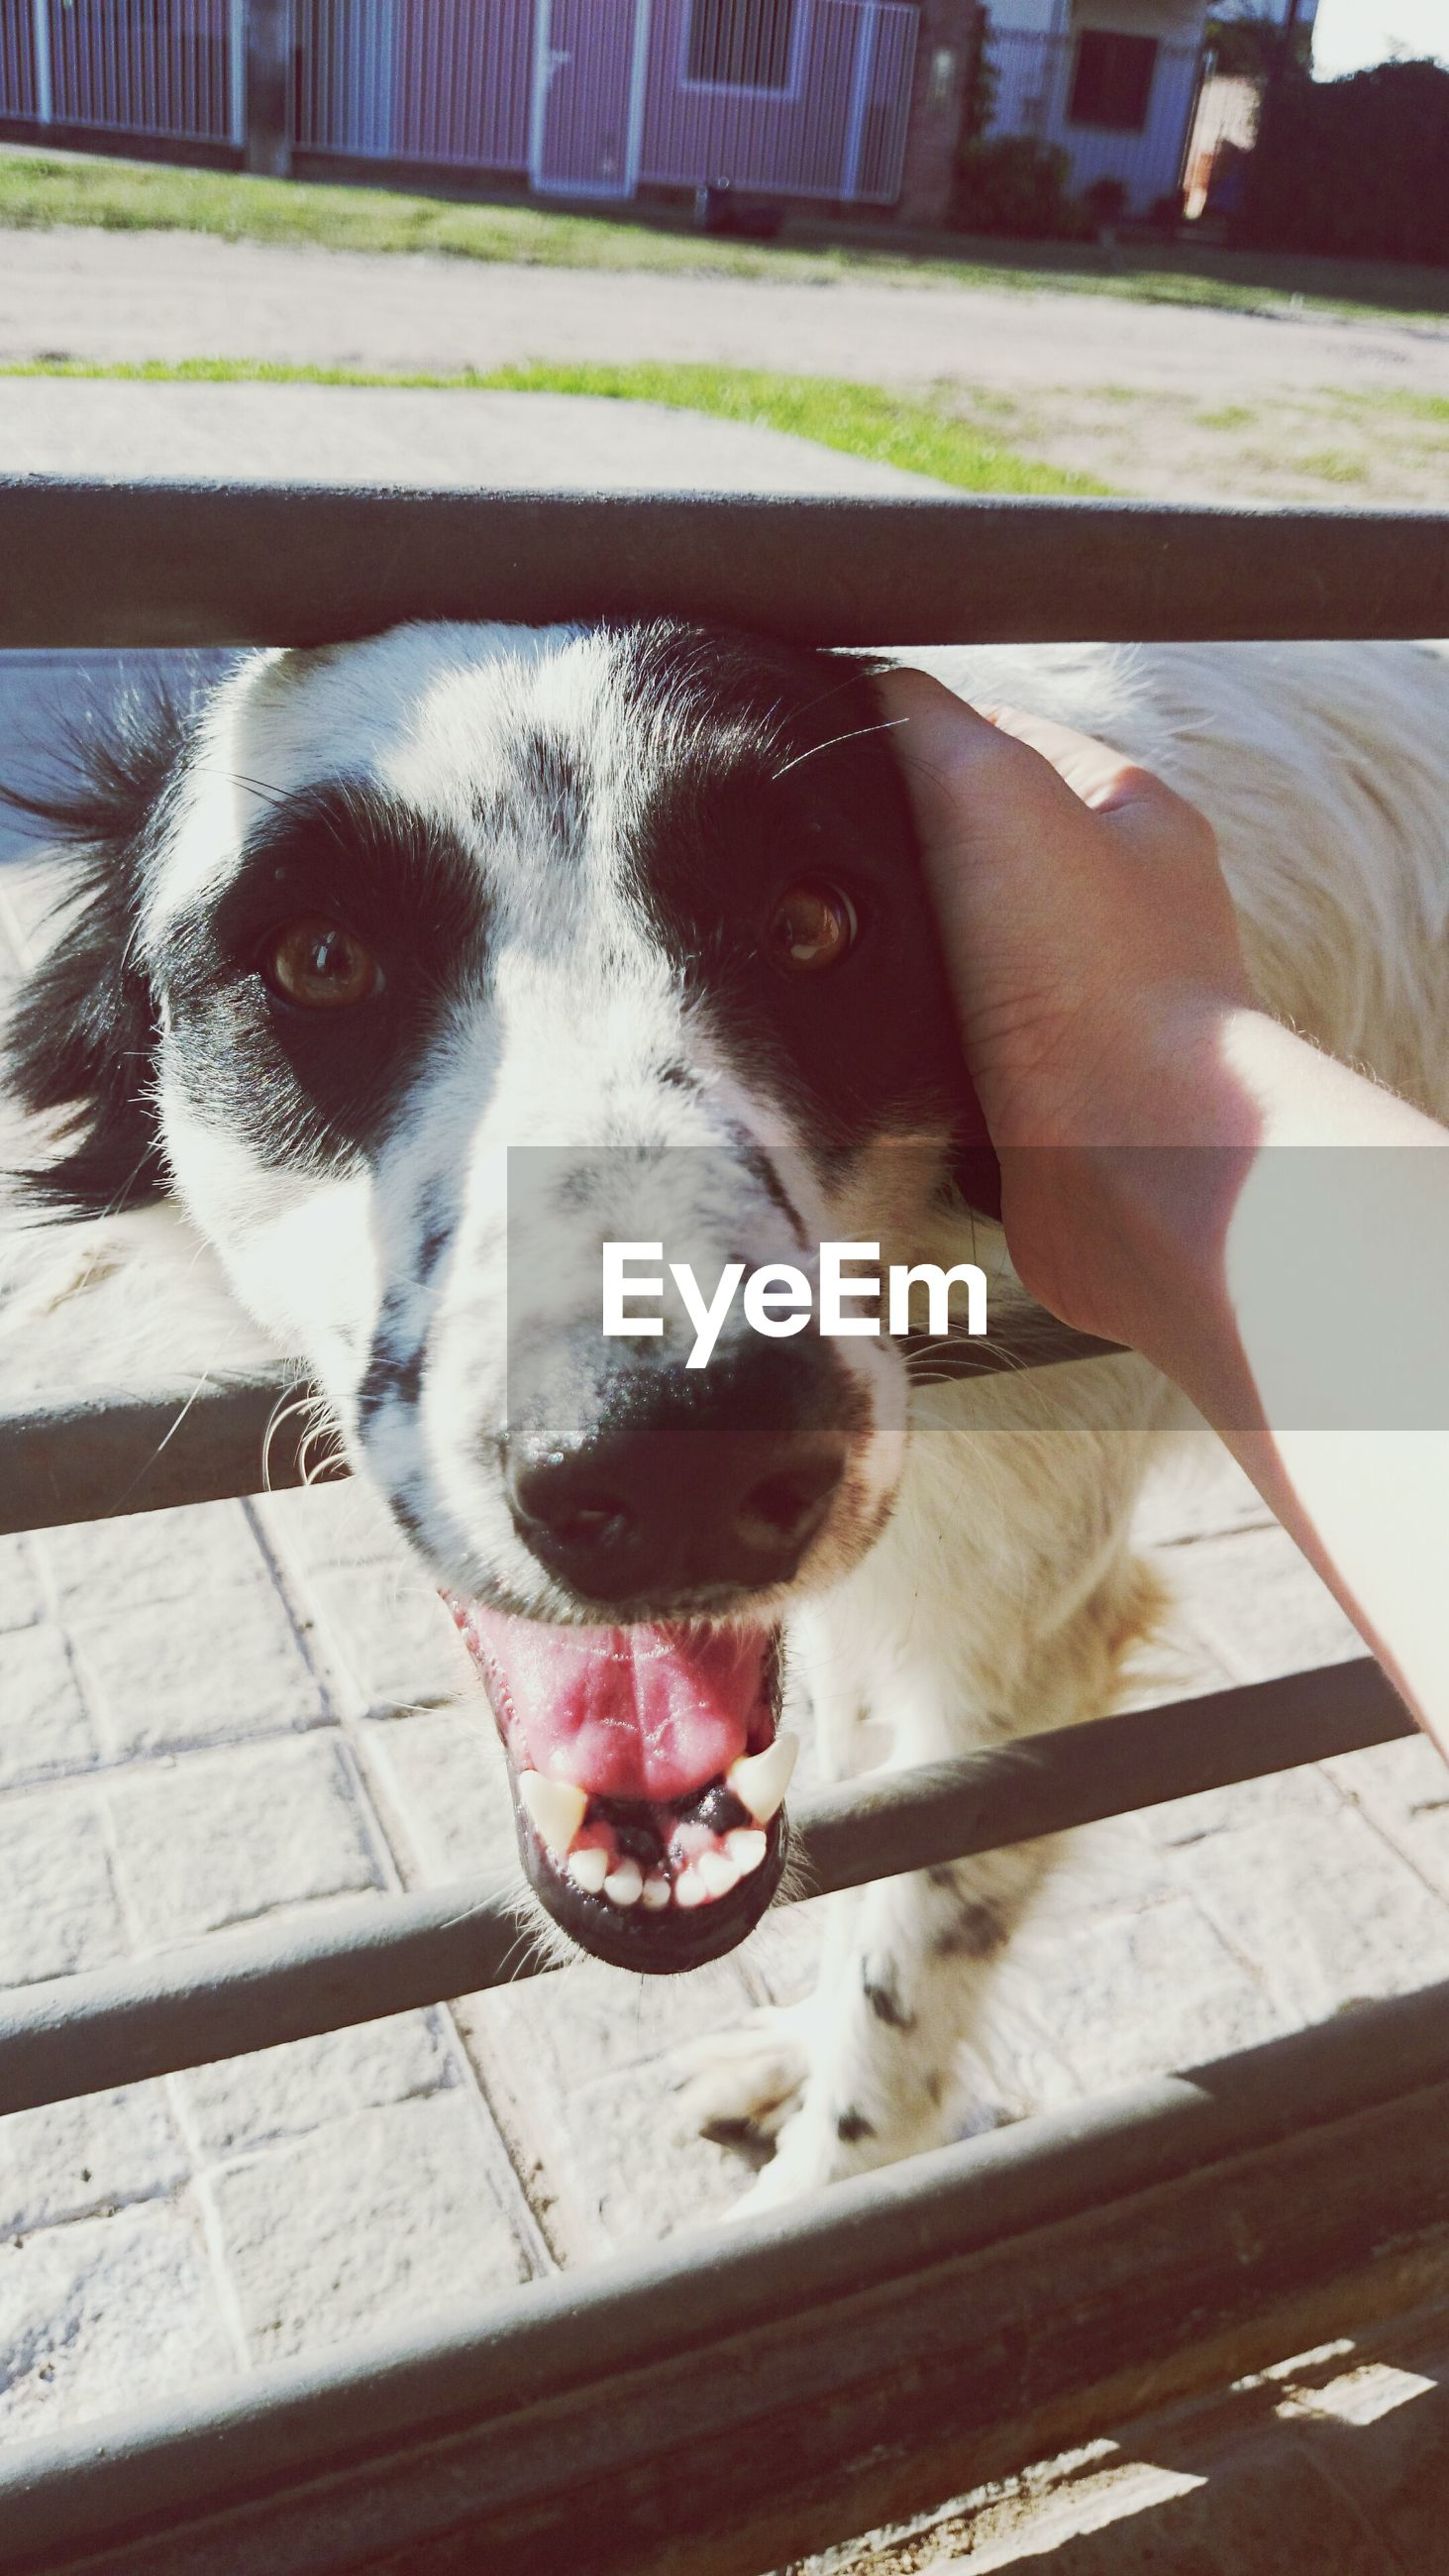 domestic animals, animal themes, one animal, pets, mammal, dog, animal head, part of, close-up, one person, relaxation, person, sitting, animal body part, pet collar, indoors, zoology, lying down, looking at camera